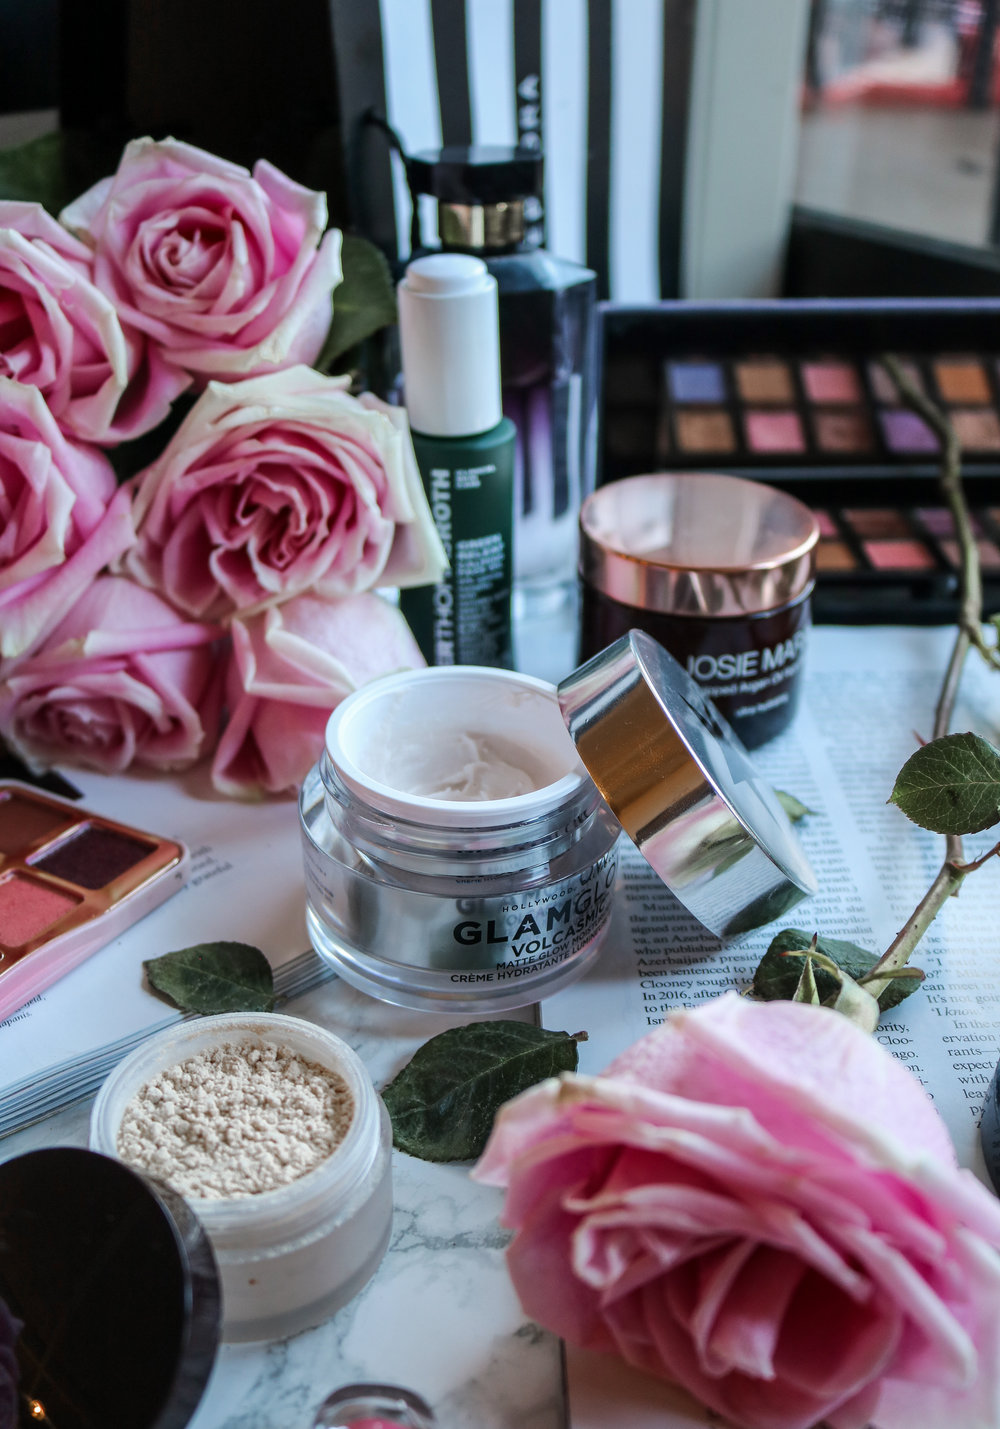 The Hungarian Brunette tips and tricks for shopping at sephora